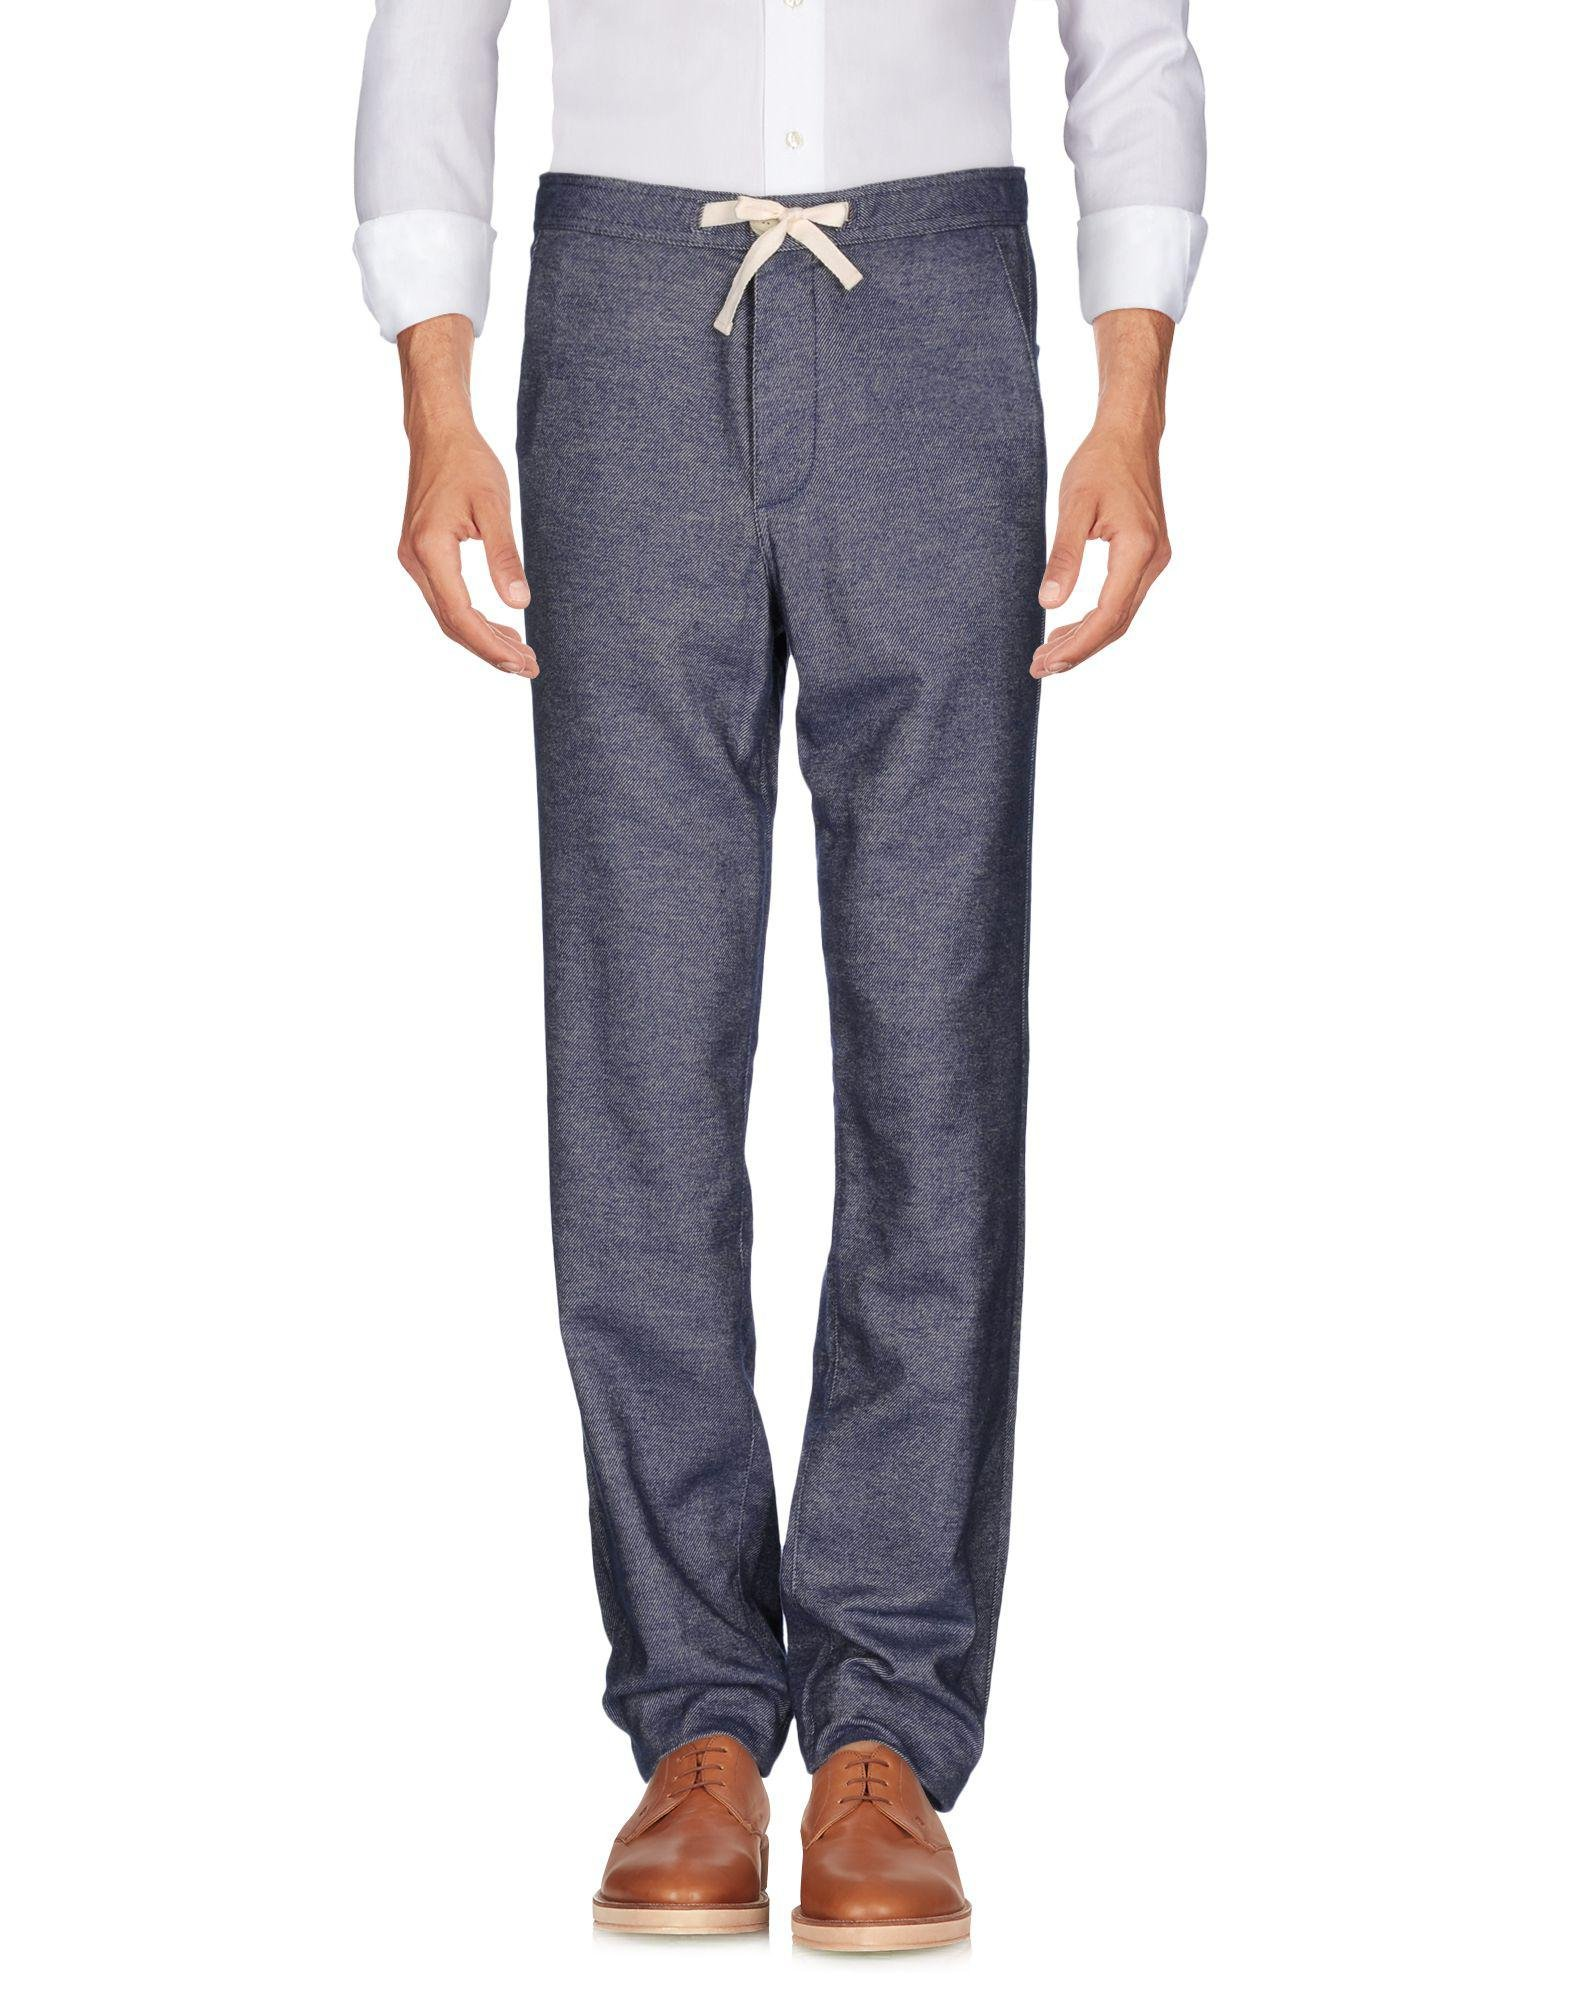 Free Shipping Order TROUSERS - Casual trousers Oliver Spencer Buy Cheap Very Cheap uKoLPIH